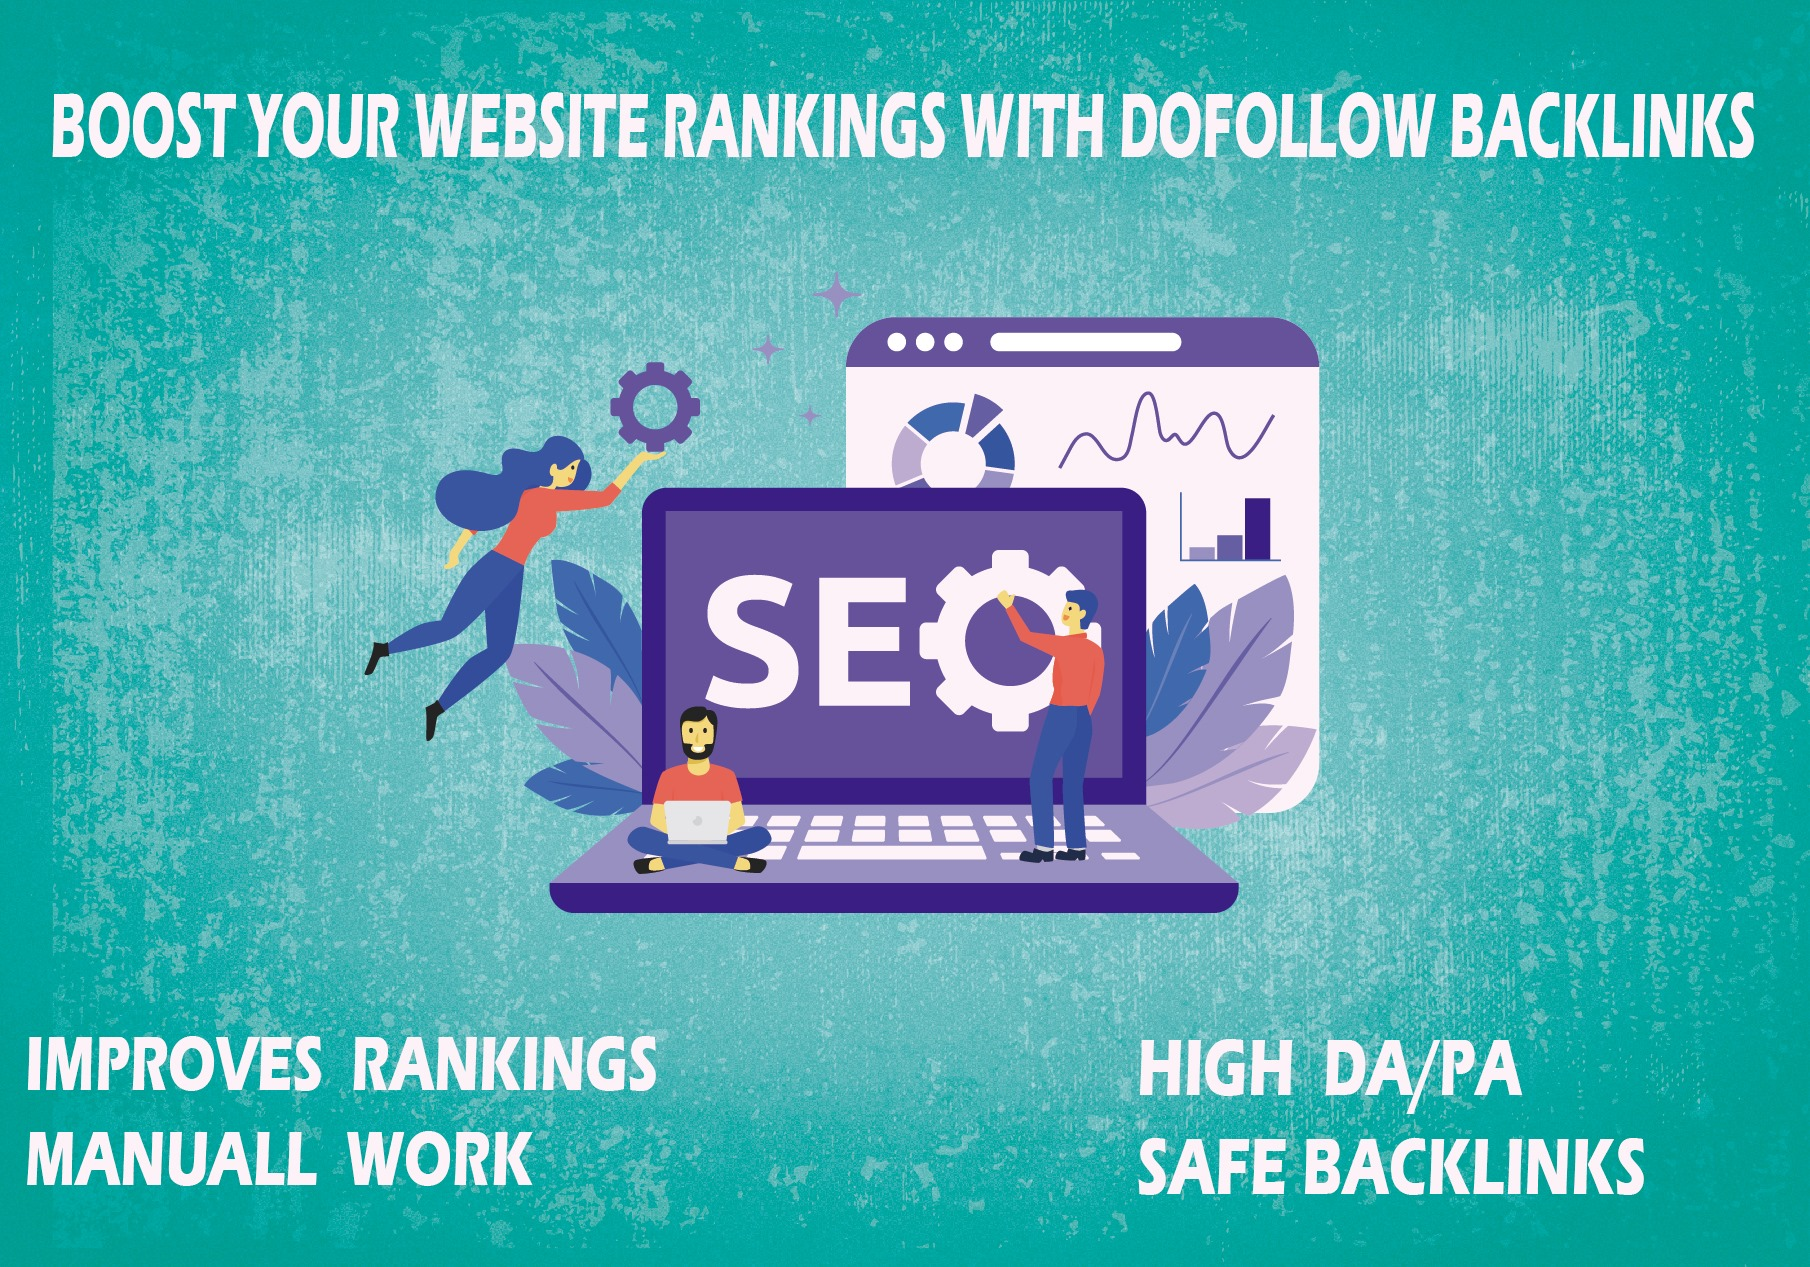 provide 100 high authority dofollow backlinks for your website ranking